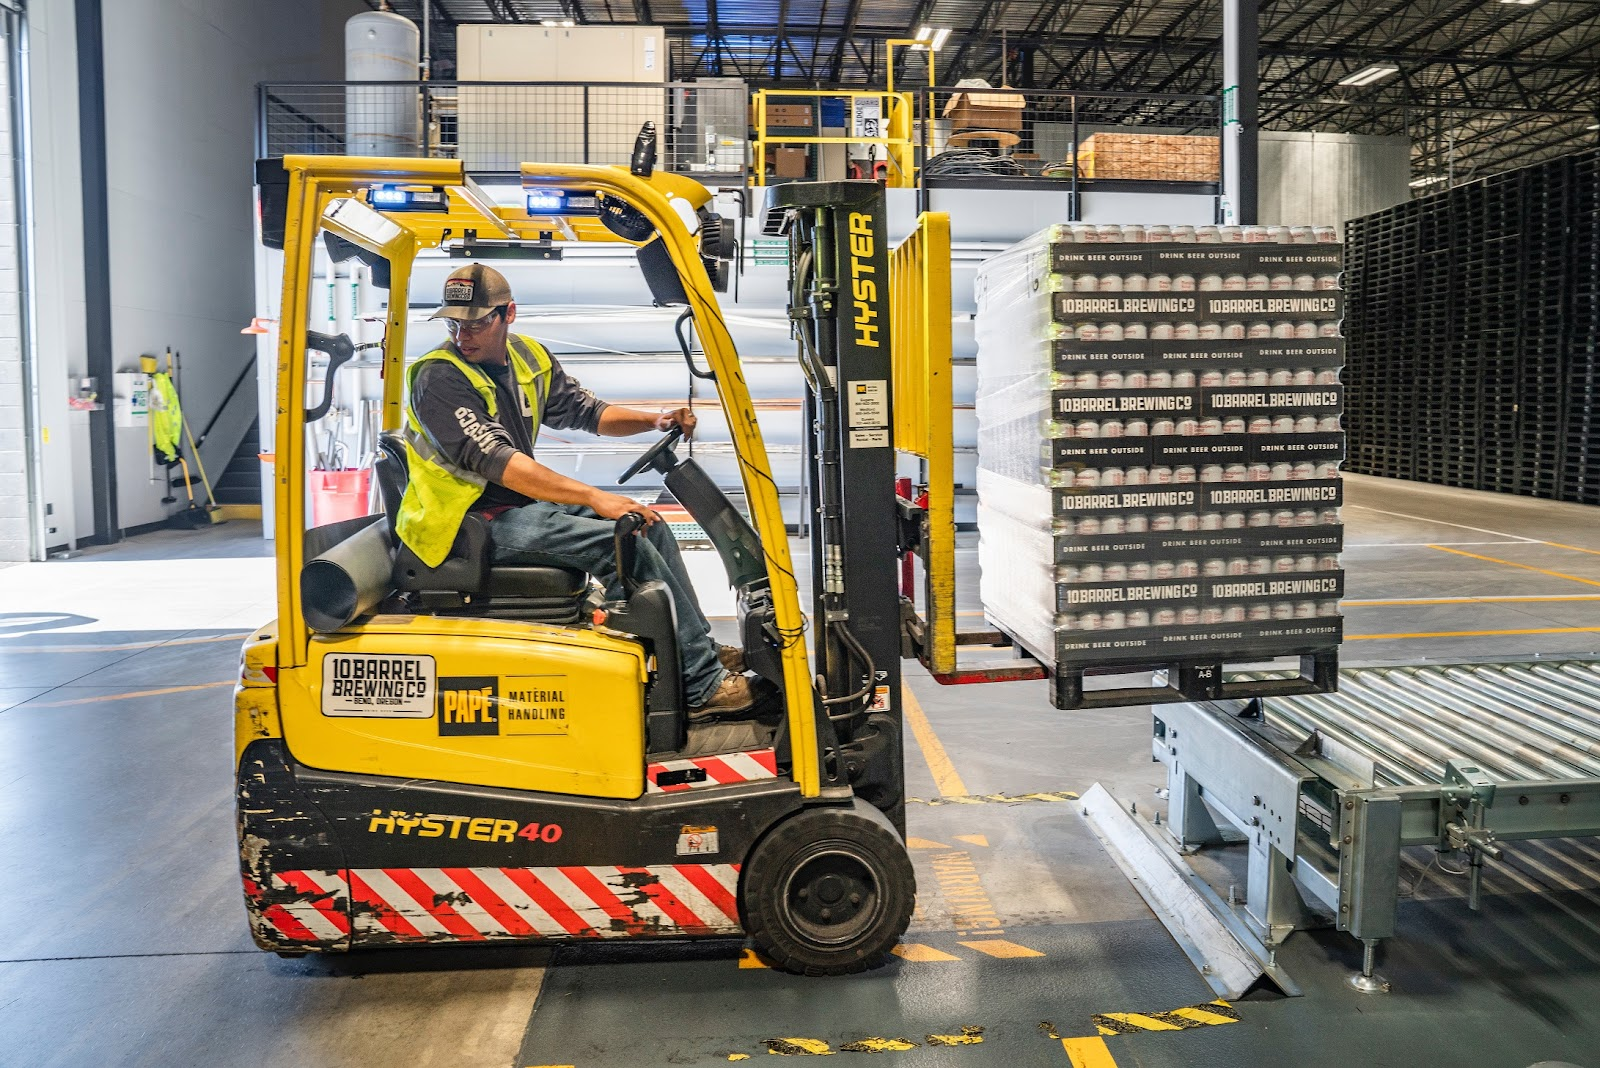 A man drives a forklift in a warehouse